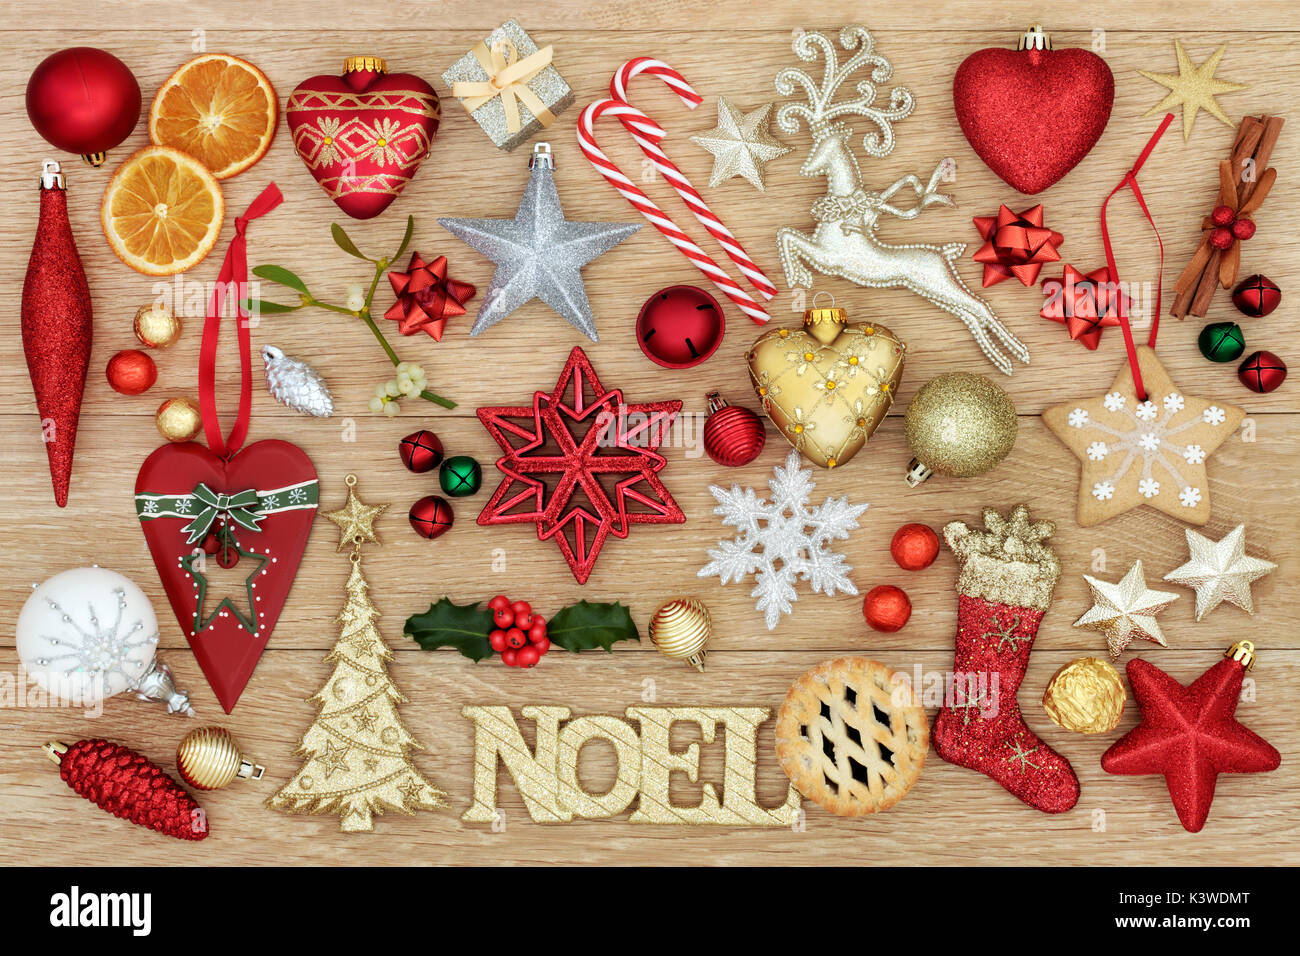 Why is holly a traditional christmas decoration - Christmas Symbols With Noel Sign Bauble Decorations Traditional Ornaments Holly Mistletoe Mince Pie And Gingerbread Biscuit On Oak Wood Backgroun